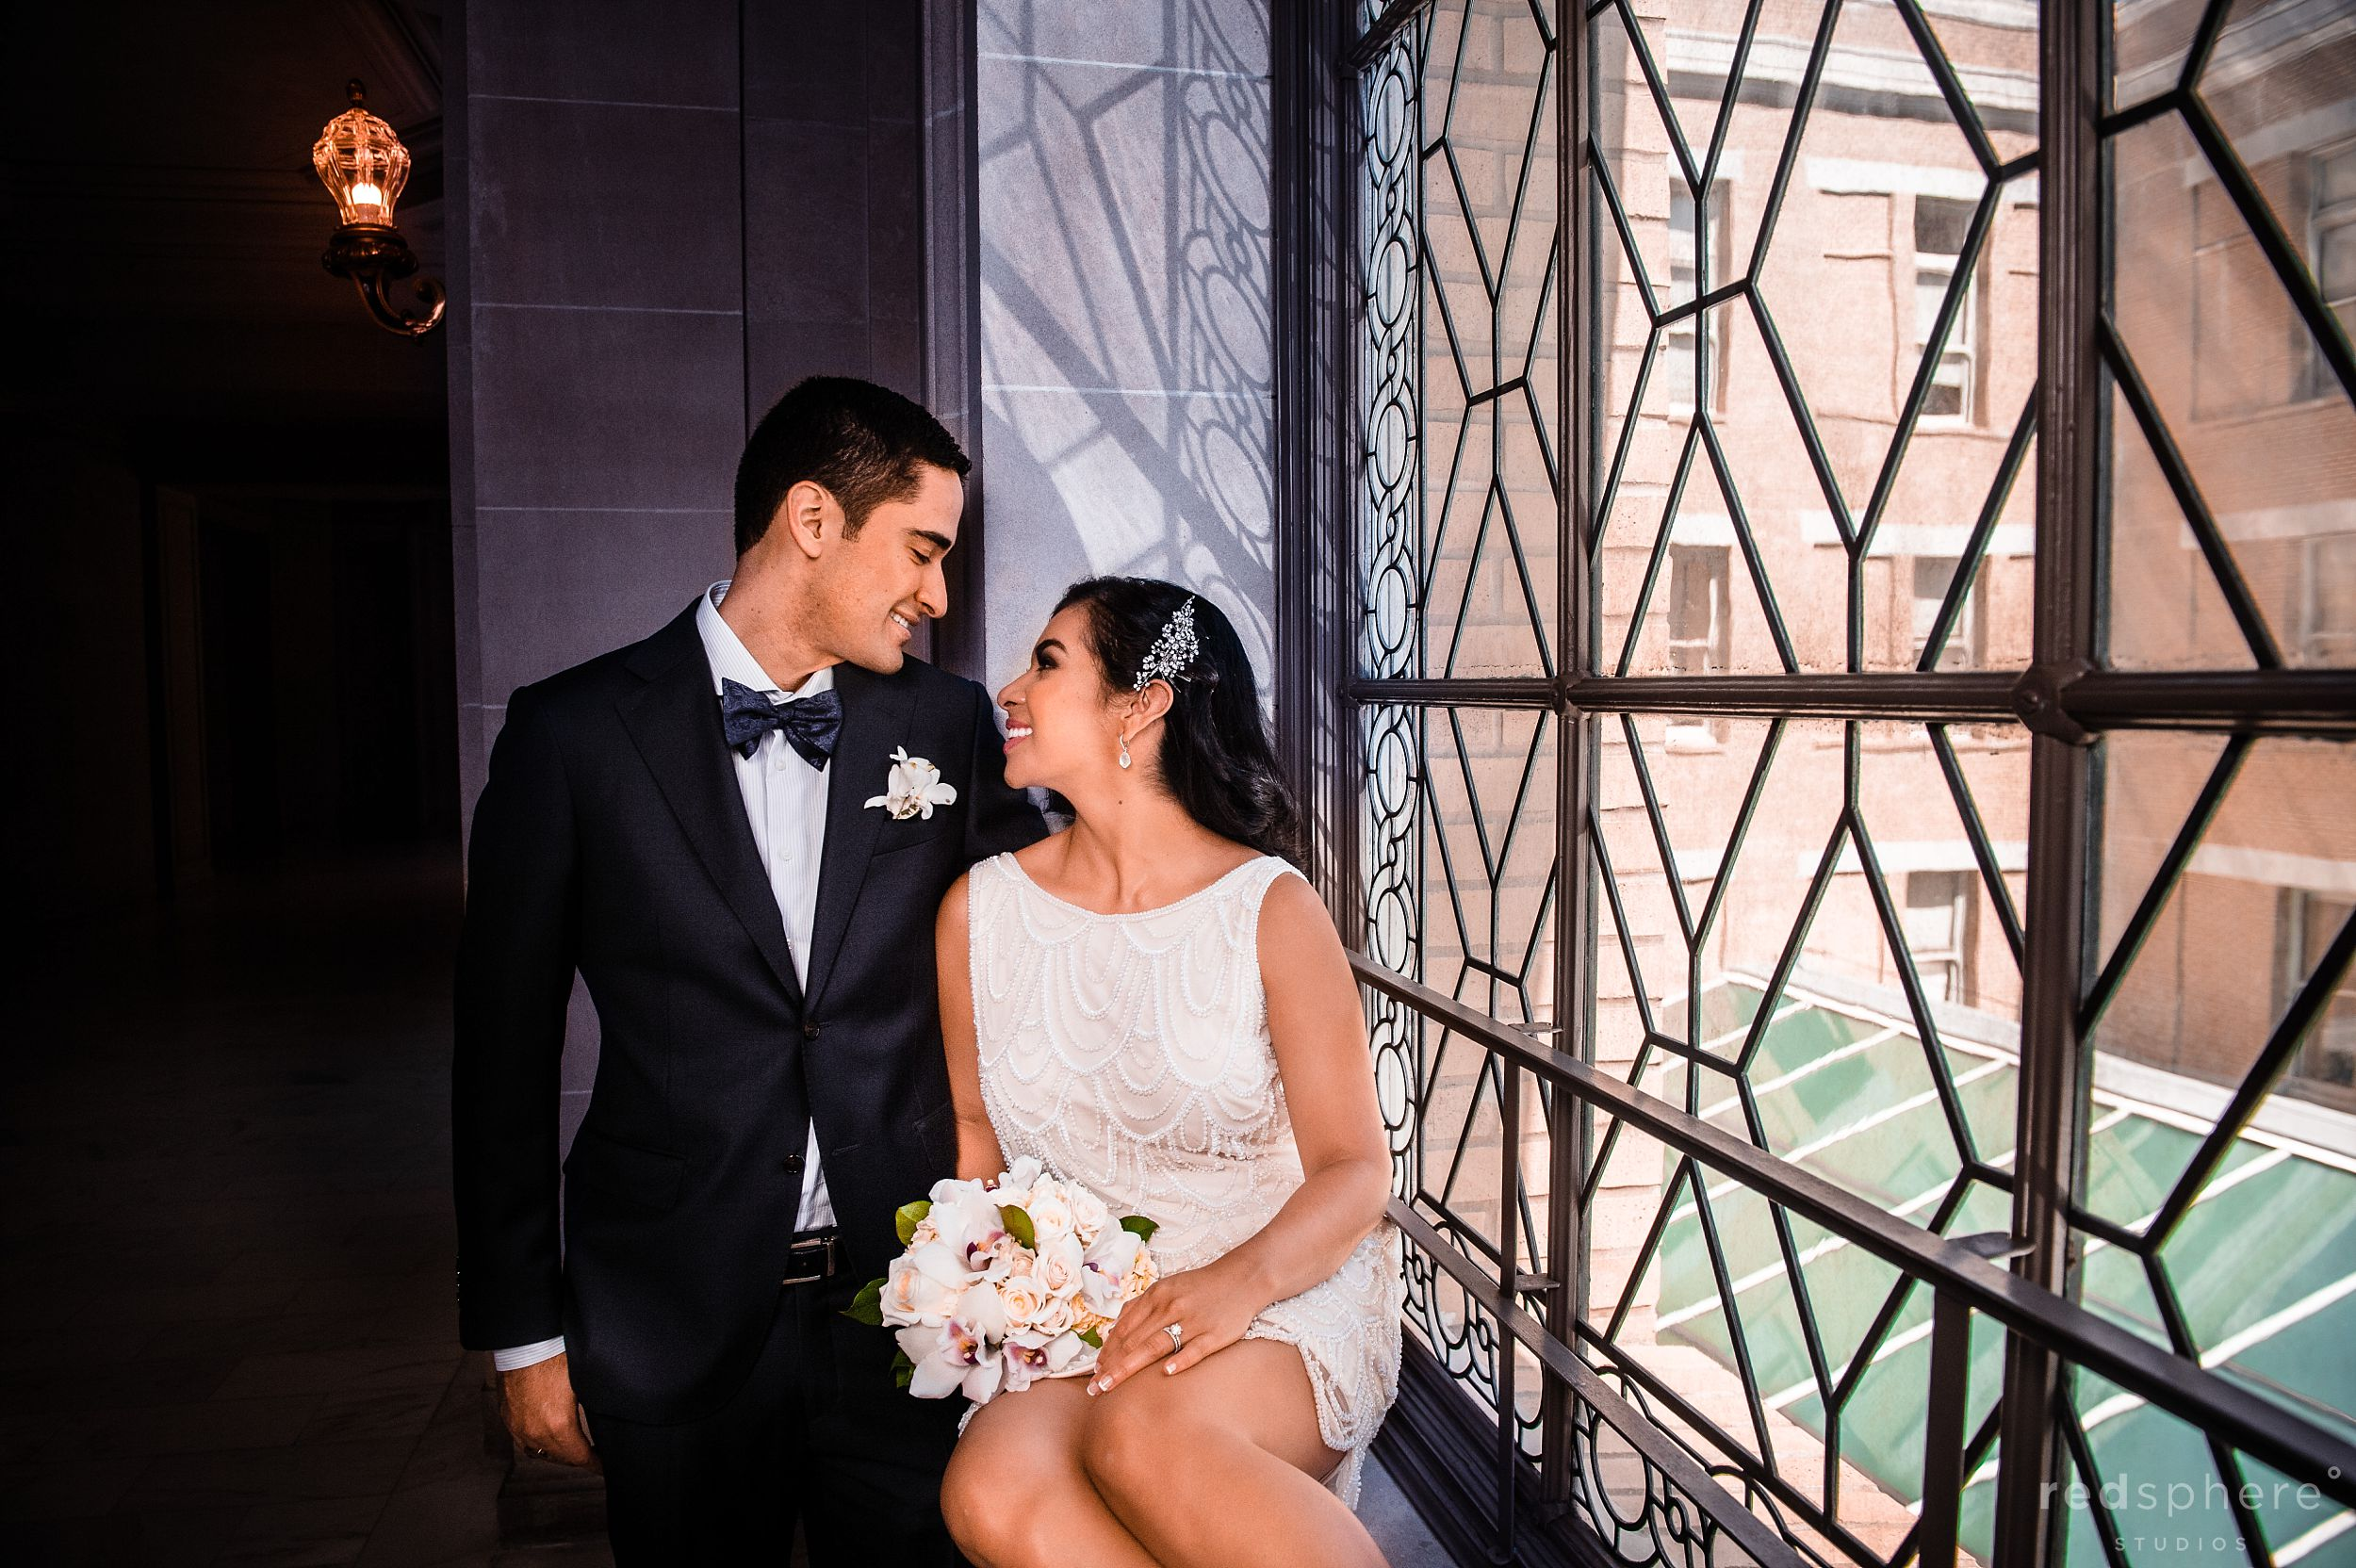 Bride With Bouquet and Groom at San Francisco City Hall Wedding